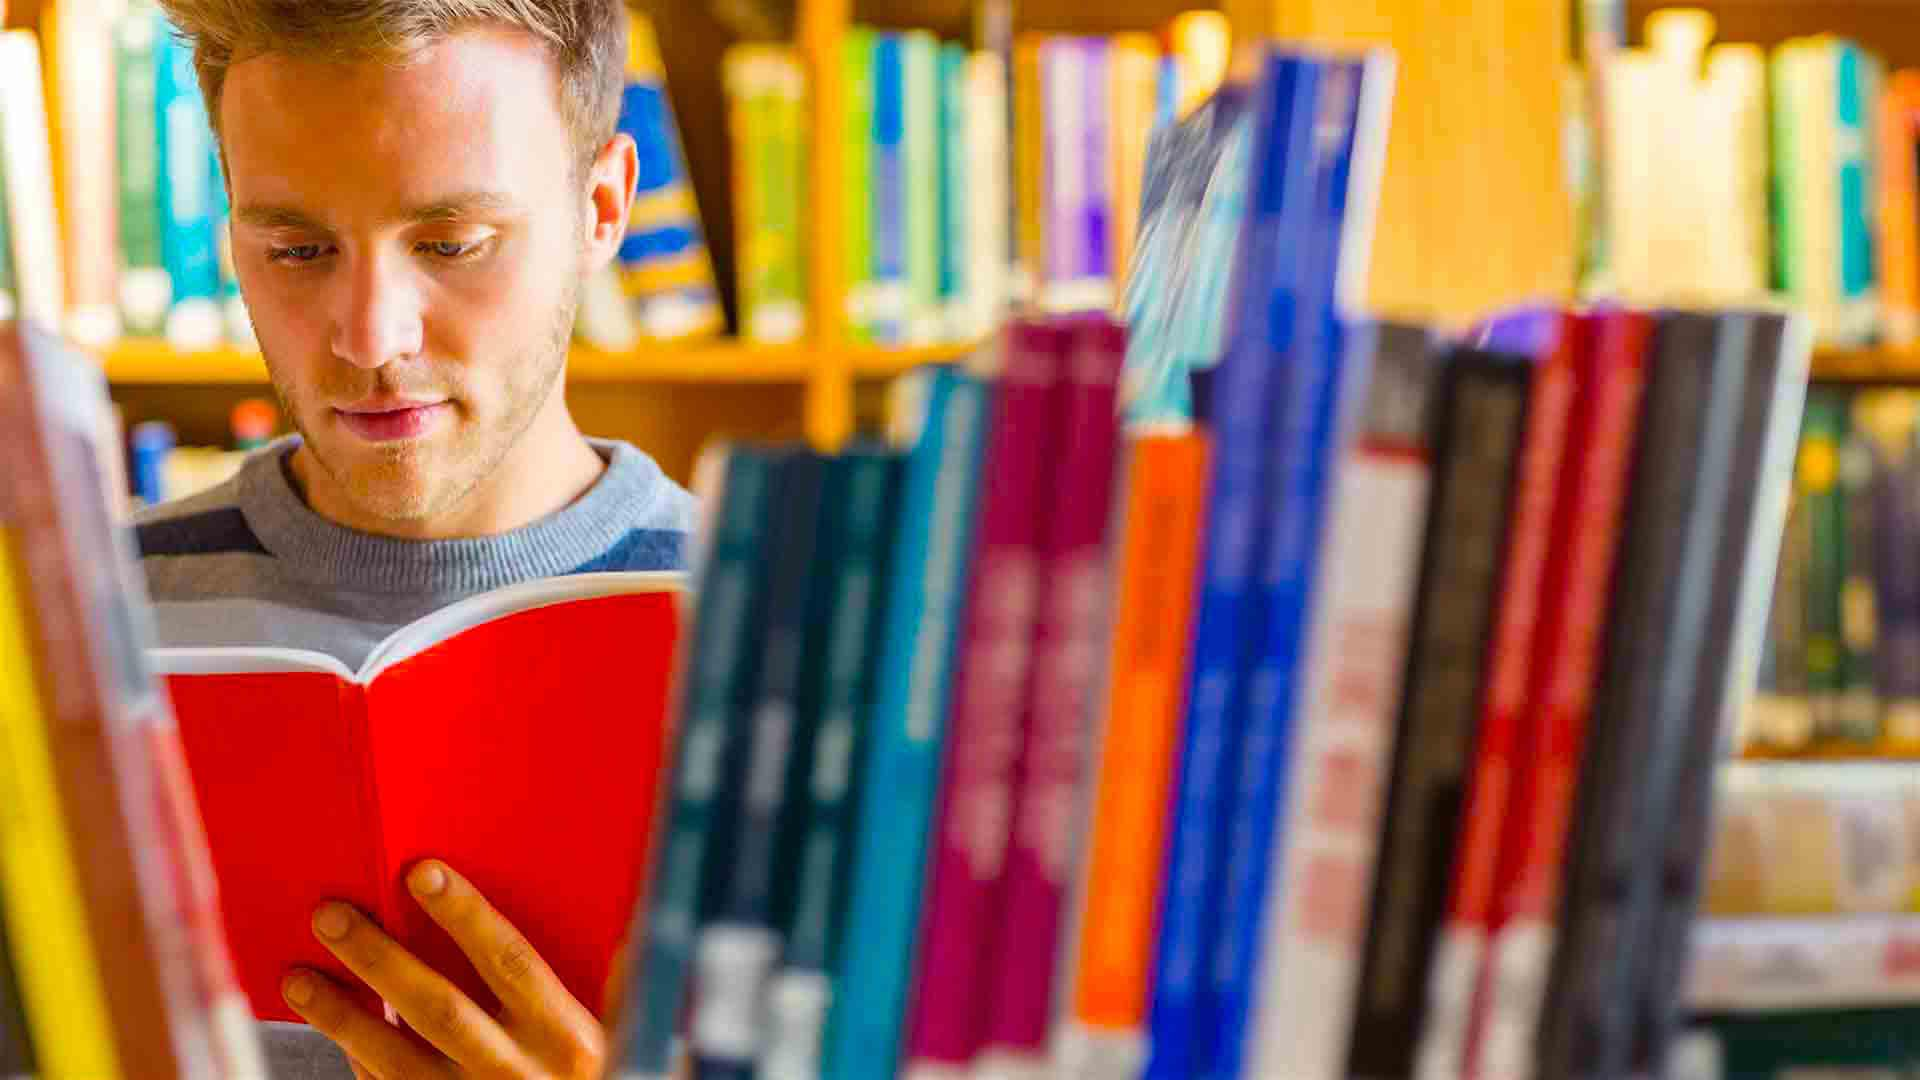 3 Easy Things You Can do to Read More Books